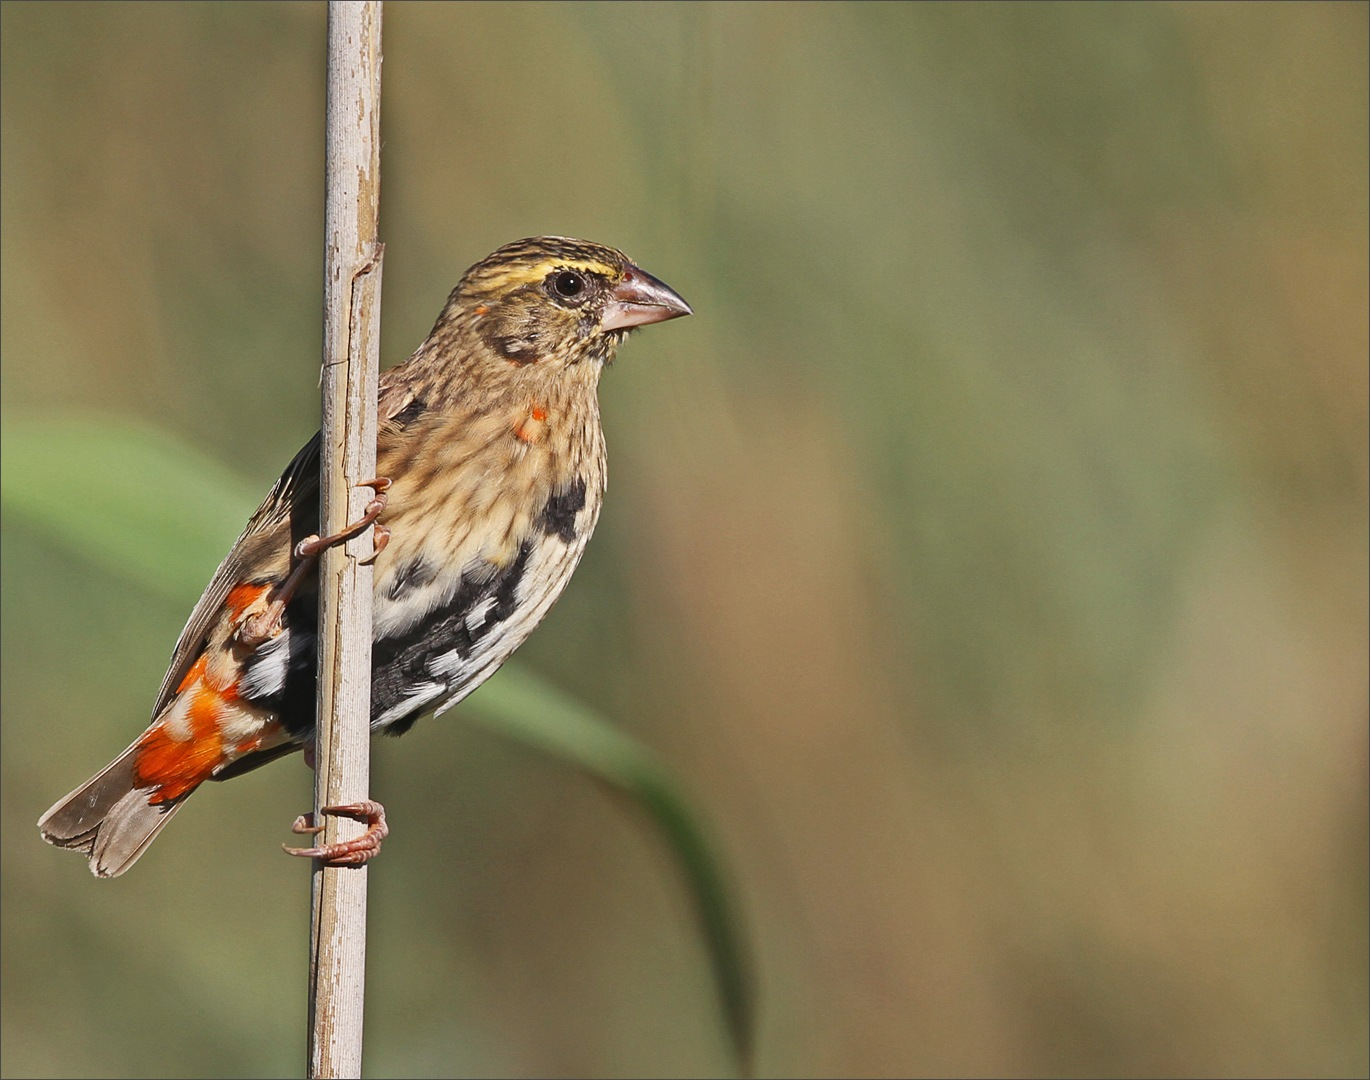 Southern red bishop by Johann Harmse